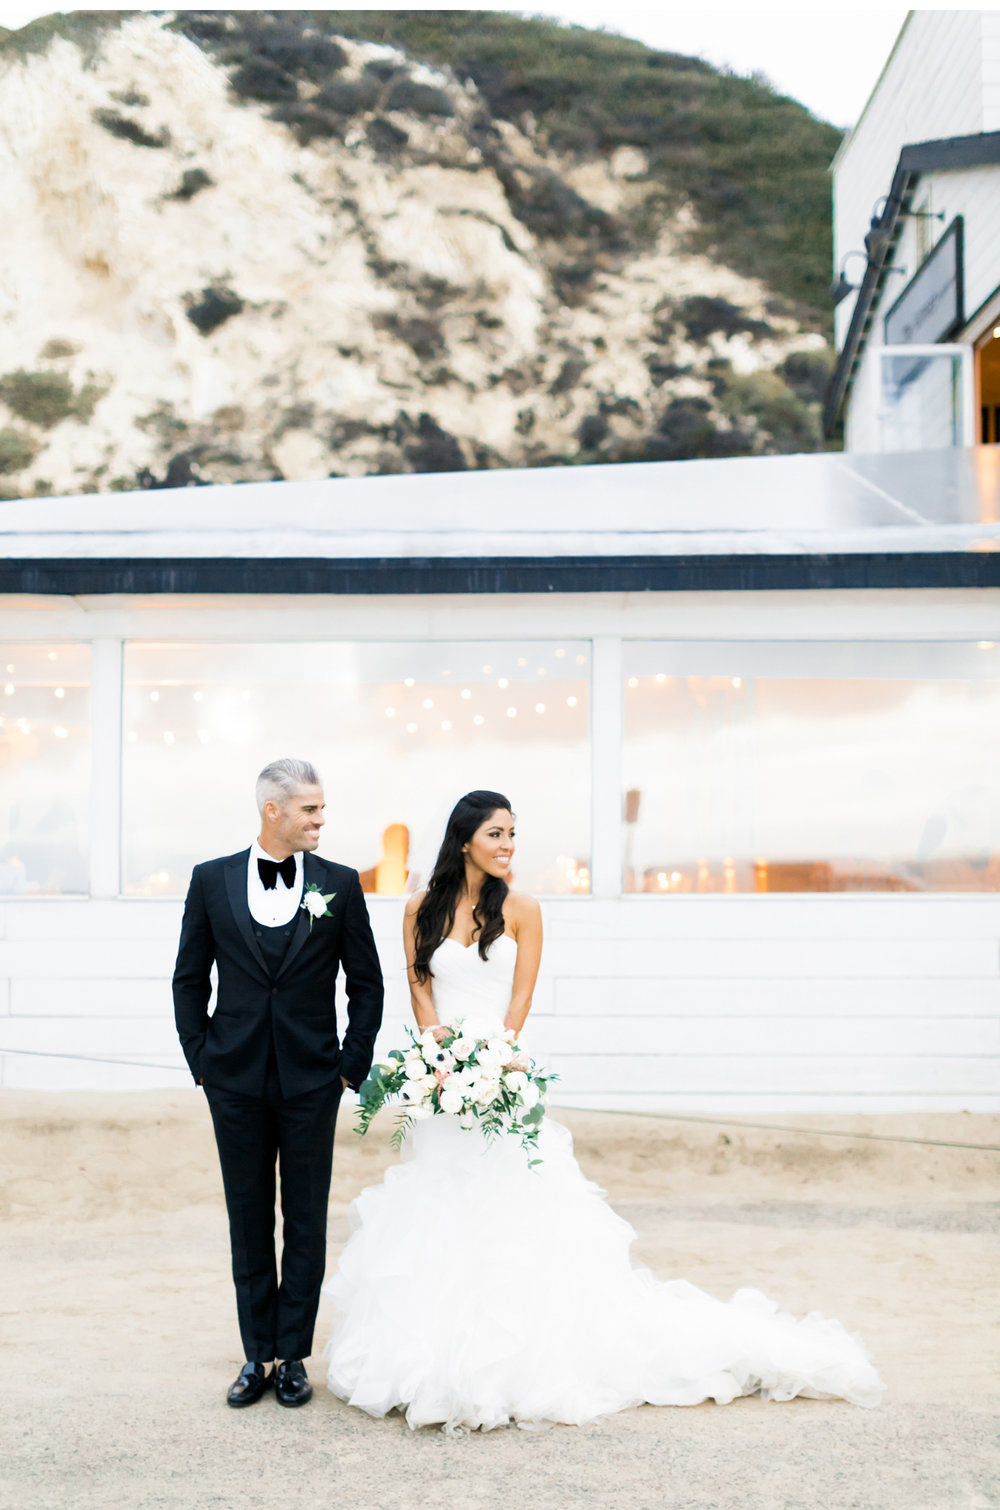 Style-Me-Pretty-Malibu-Beach-CA-Wedding-Natalie-Schutt-Photography_04.jpg